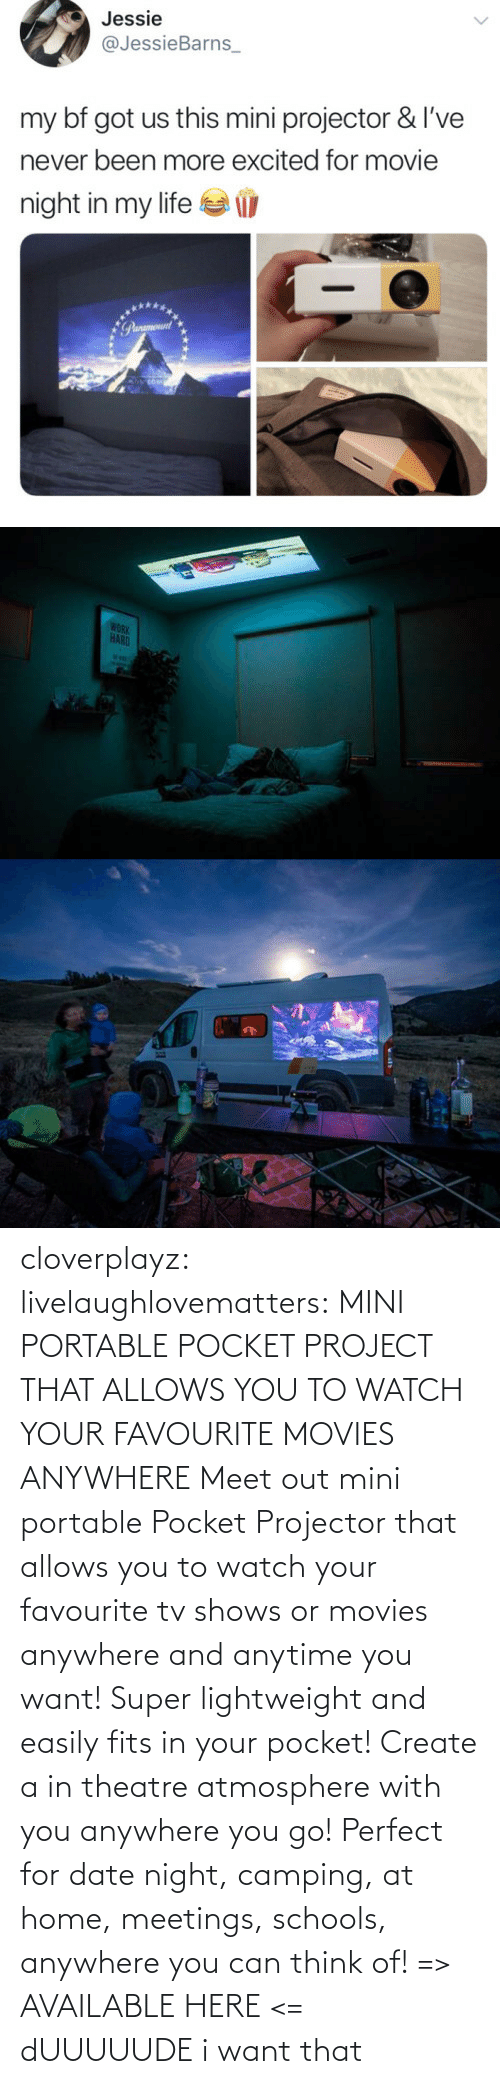 super: cloverplayz: livelaughlovematters:  MINI PORTABLE POCKET PROJECT THAT ALLOWS YOU TO WATCH YOUR FAVOURITE MOVIES ANYWHERE Meet out mini portable Pocket Projector that allows you to watch your favourite tv shows or movies anywhere and anytime you want! Super lightweight and easily fits in your pocket! Create a in theatre atmosphere with you anywhere you go! Perfect for date night, camping, at home, meetings, schools, anywhere you can think of! => AVAILABLE HERE <=  dUUUUUDE i want that